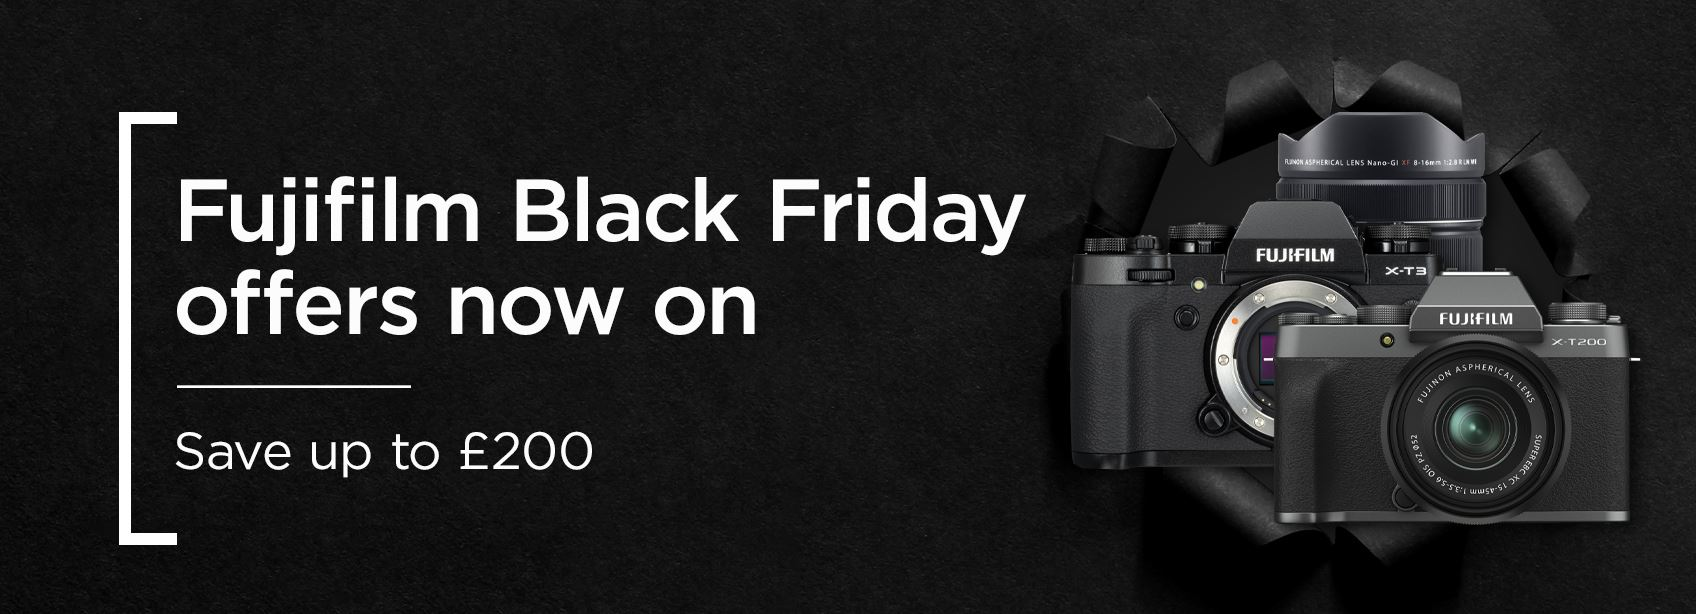 Fujifilm Black Friday offers now on - Save up to £200